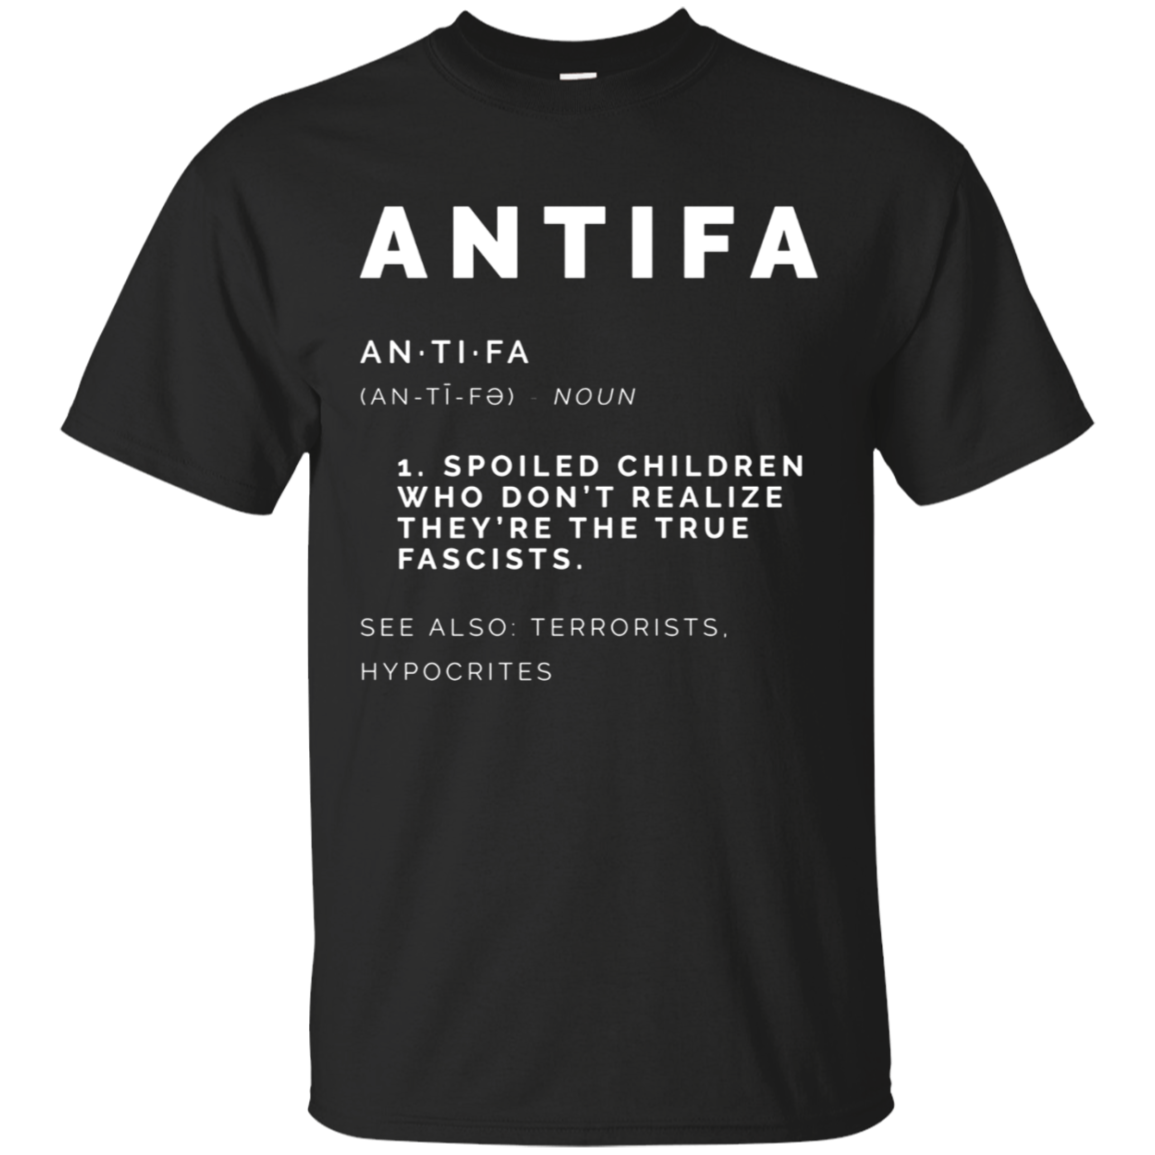 Antifa Definition Shirt